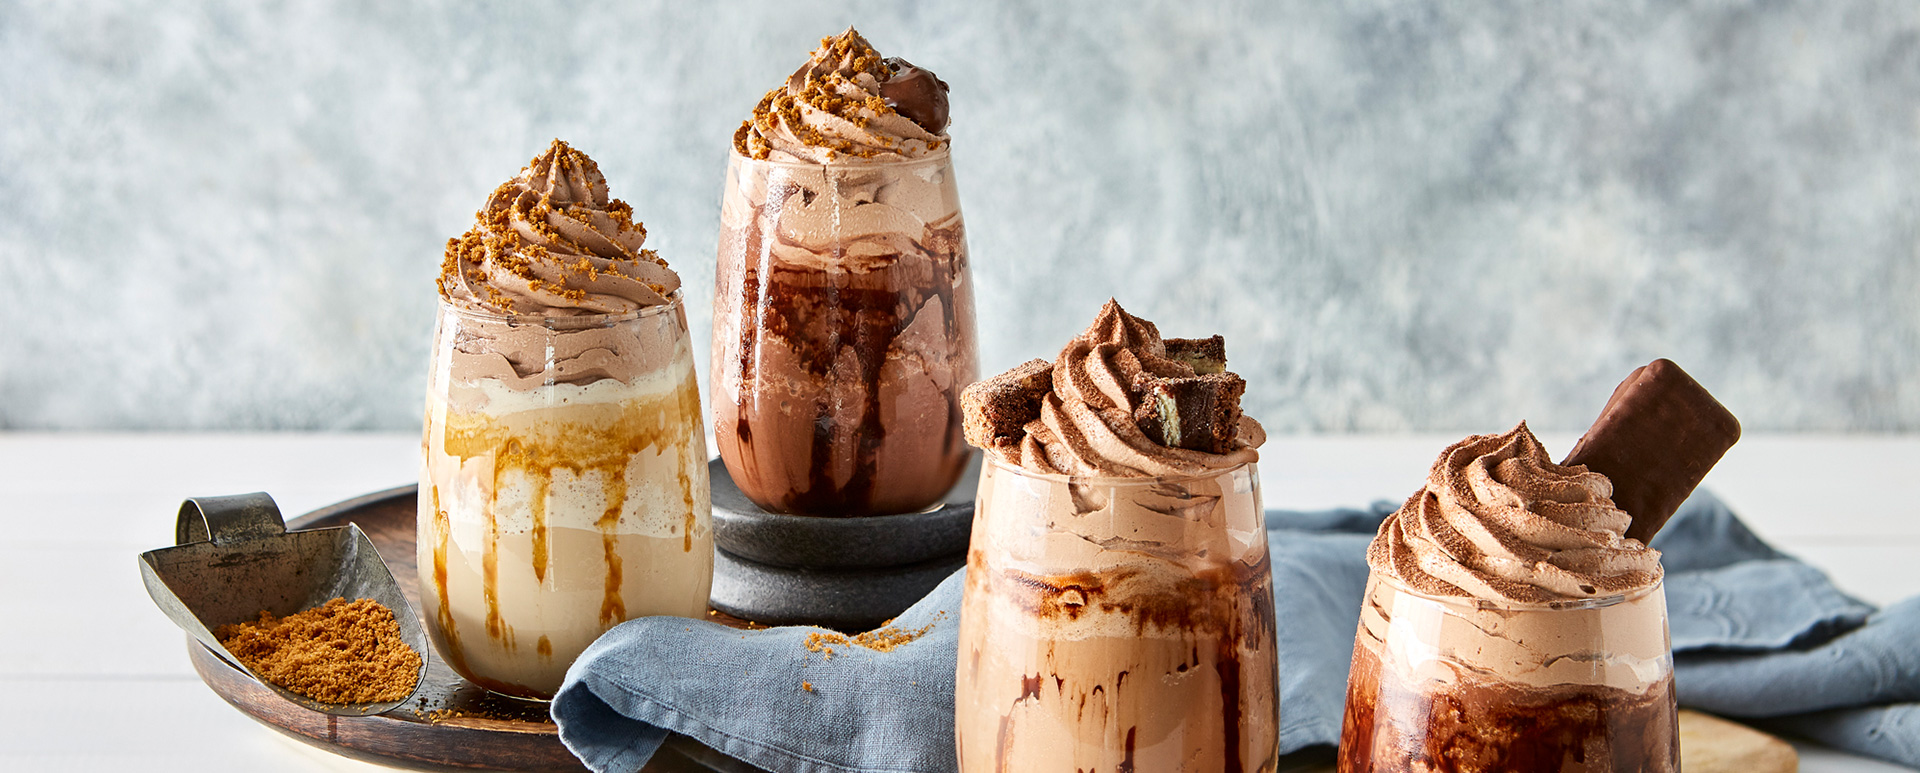 Chocolate FRAPPÉS - THE COFFEE CLUB